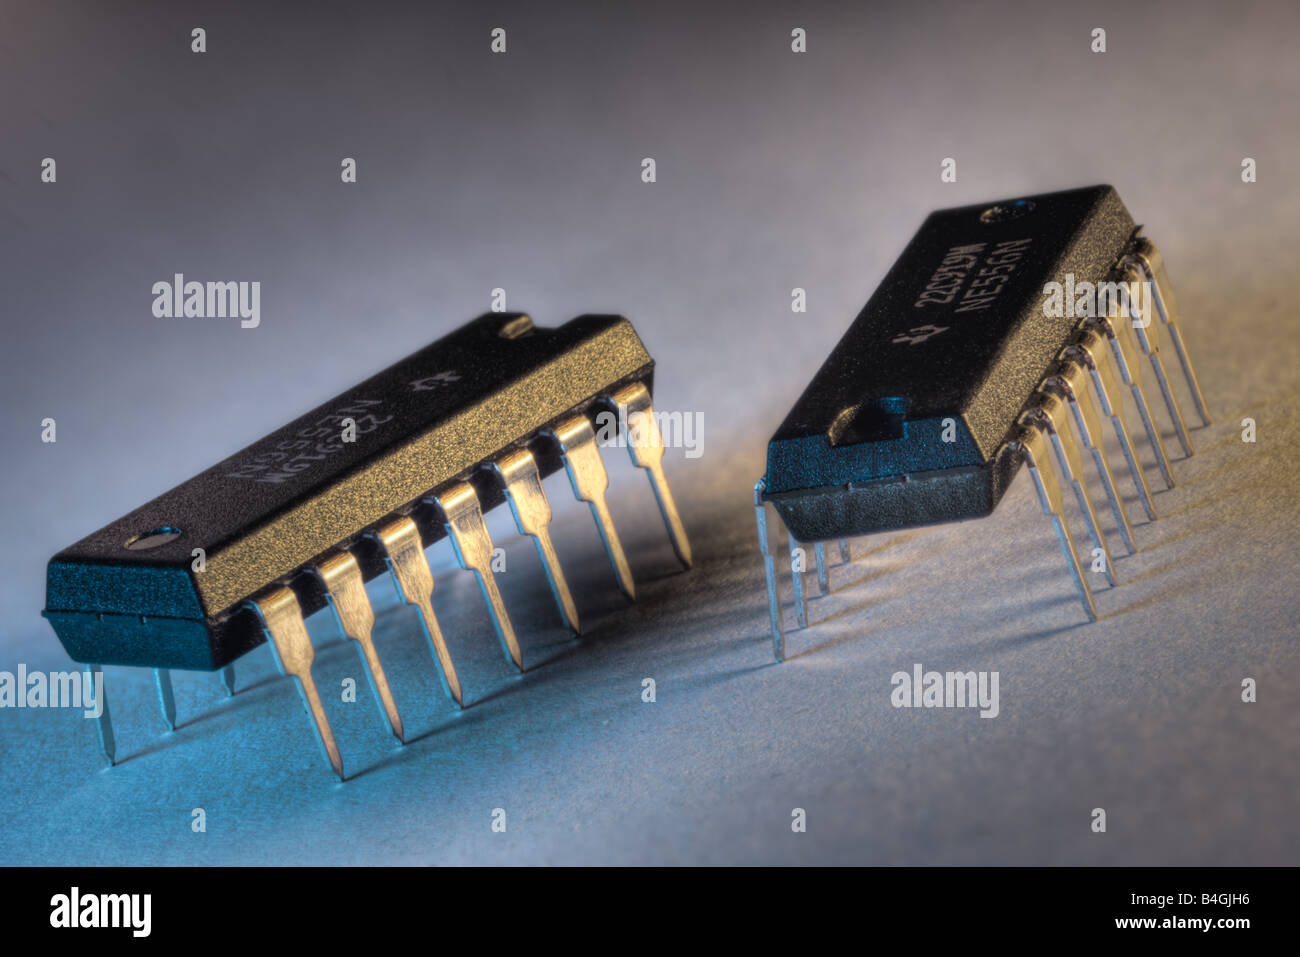 IC chips - Stock Image